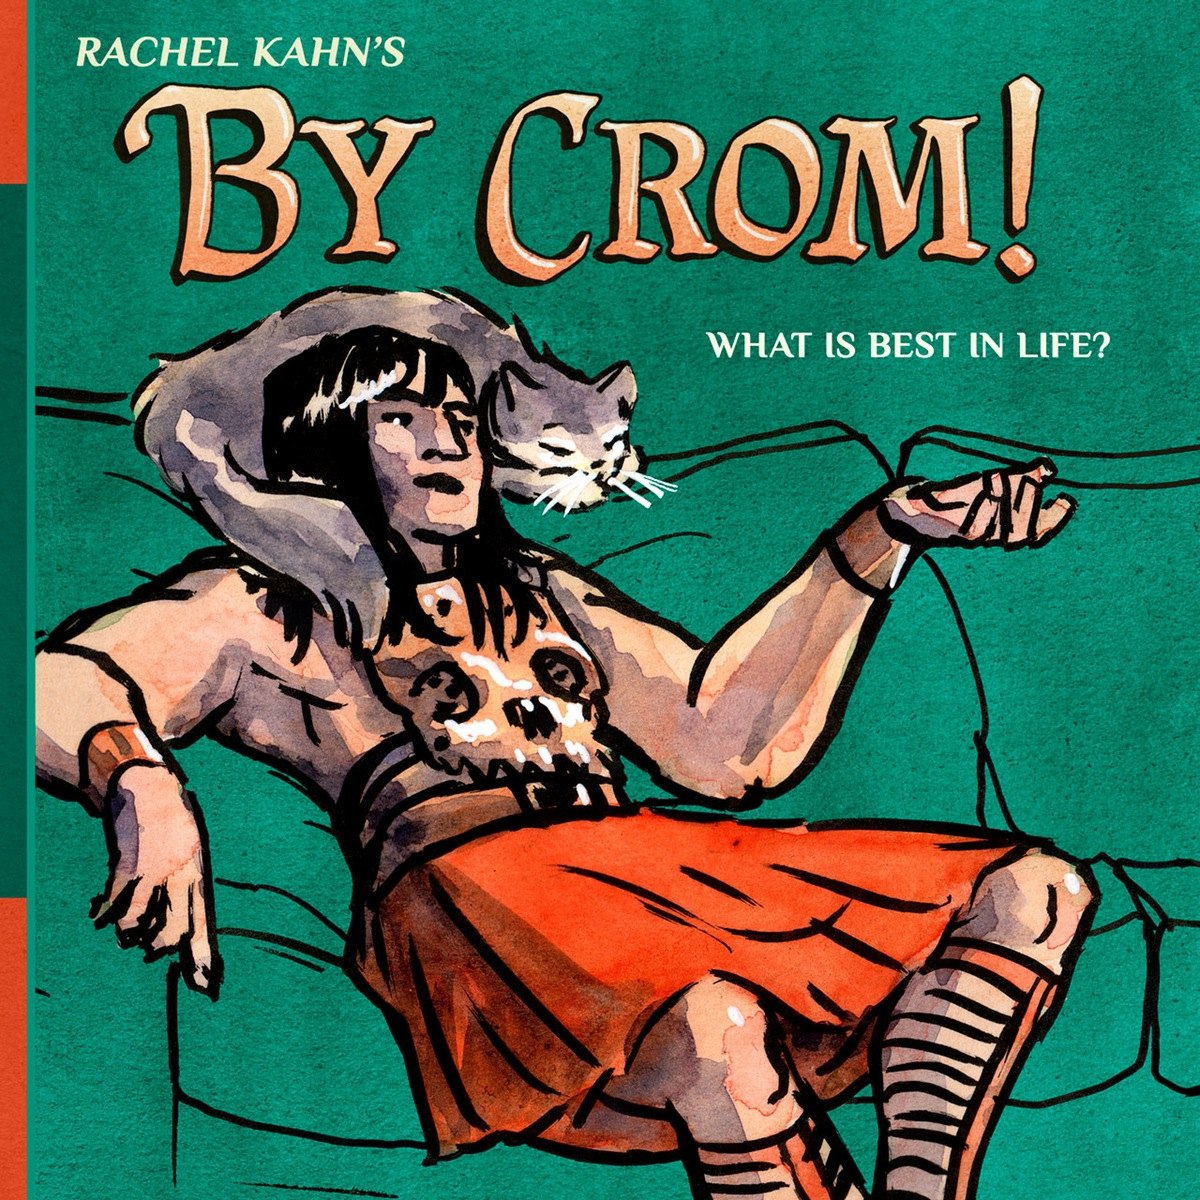 By Crom! Rachel Kahn on Getting in Touch with Your Inner Barbarian